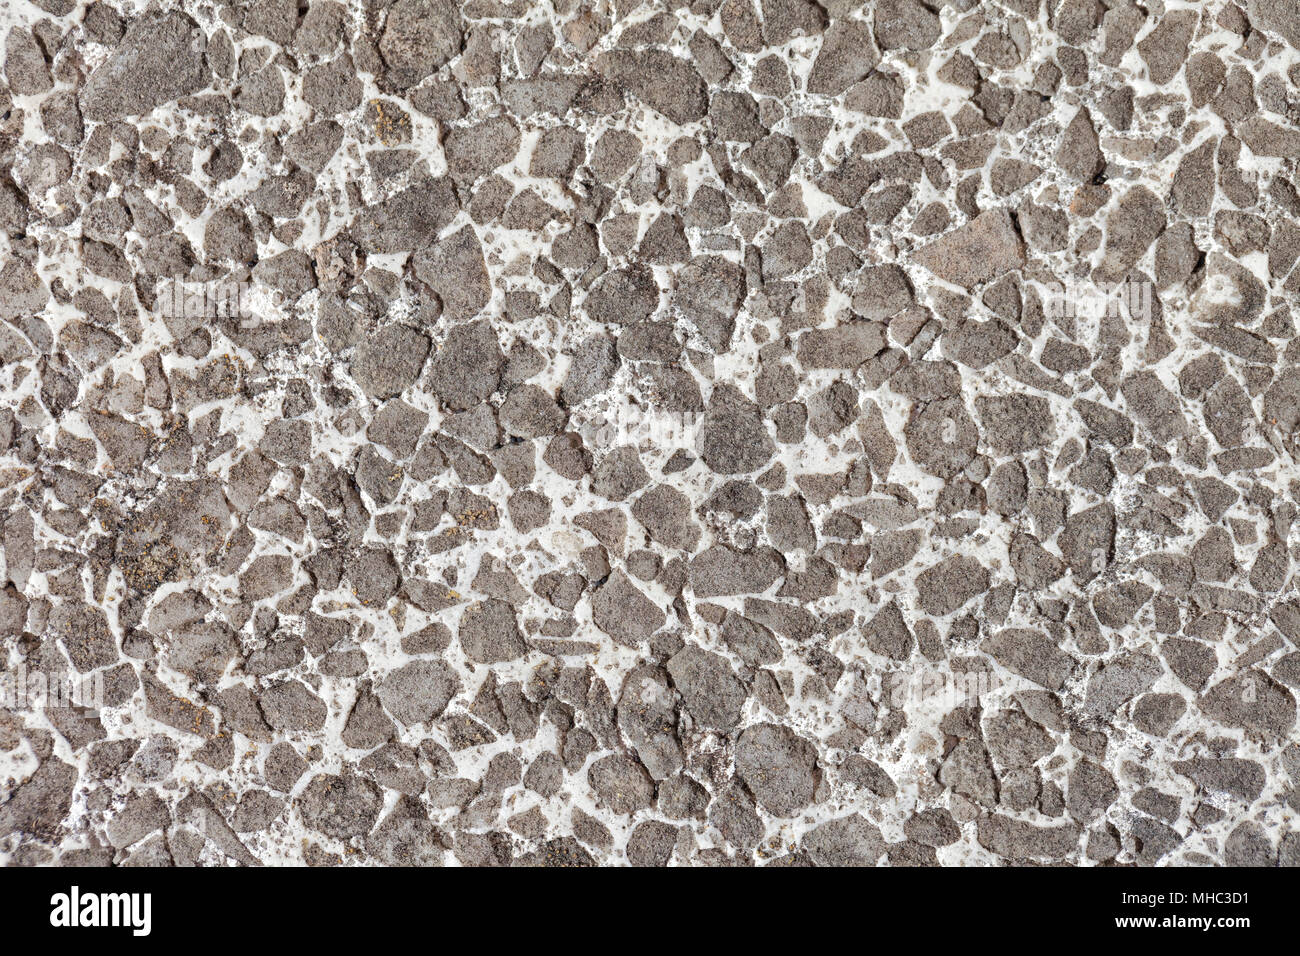 Terrazzo floor texture deteriorated by the use and the passage of time. - Stock Image